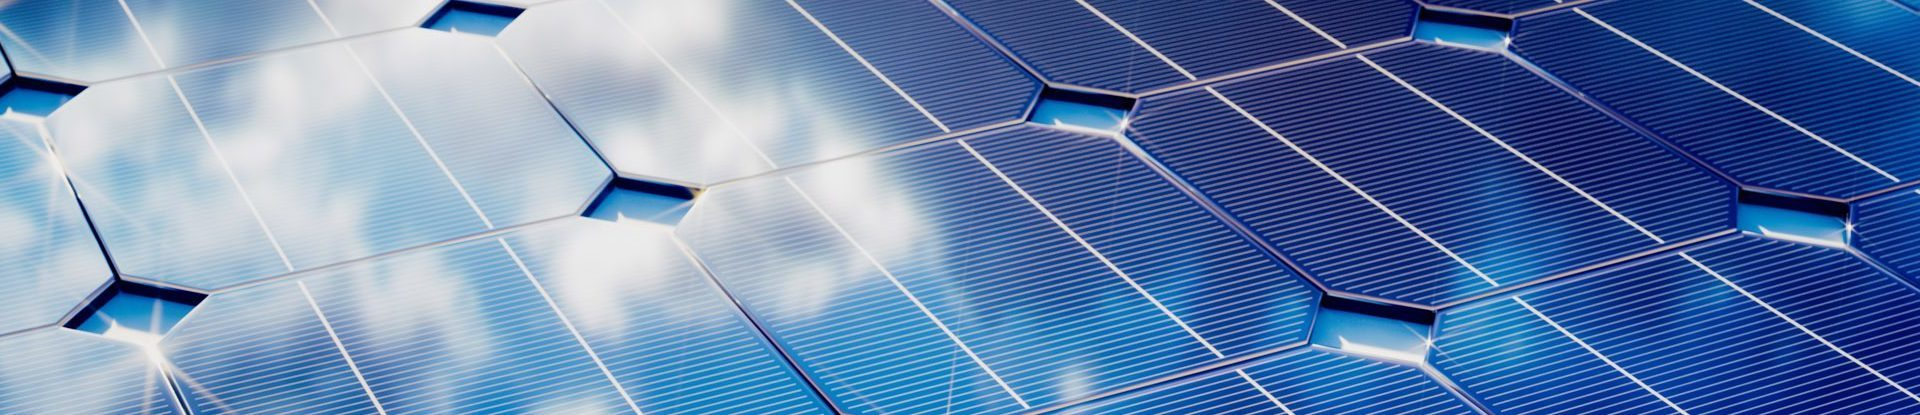 Developing solar projects on roofs, parking shades or floors